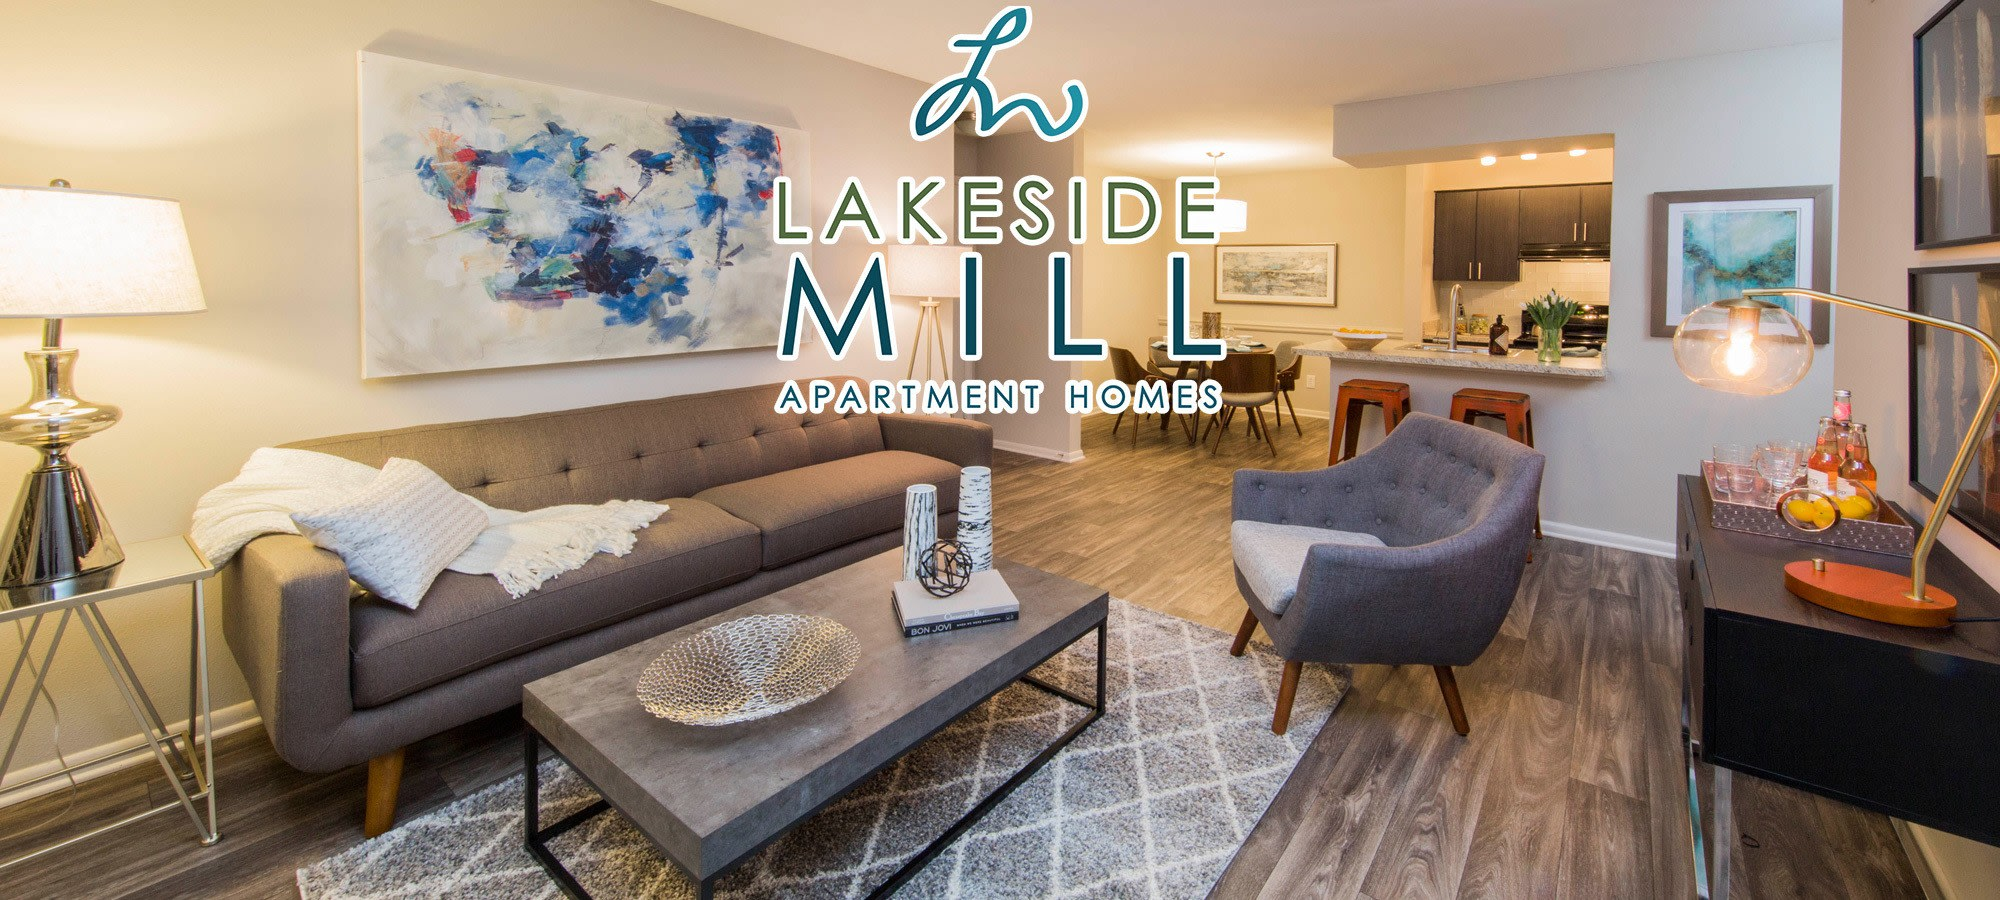 Apartments in Lakeside Mill.